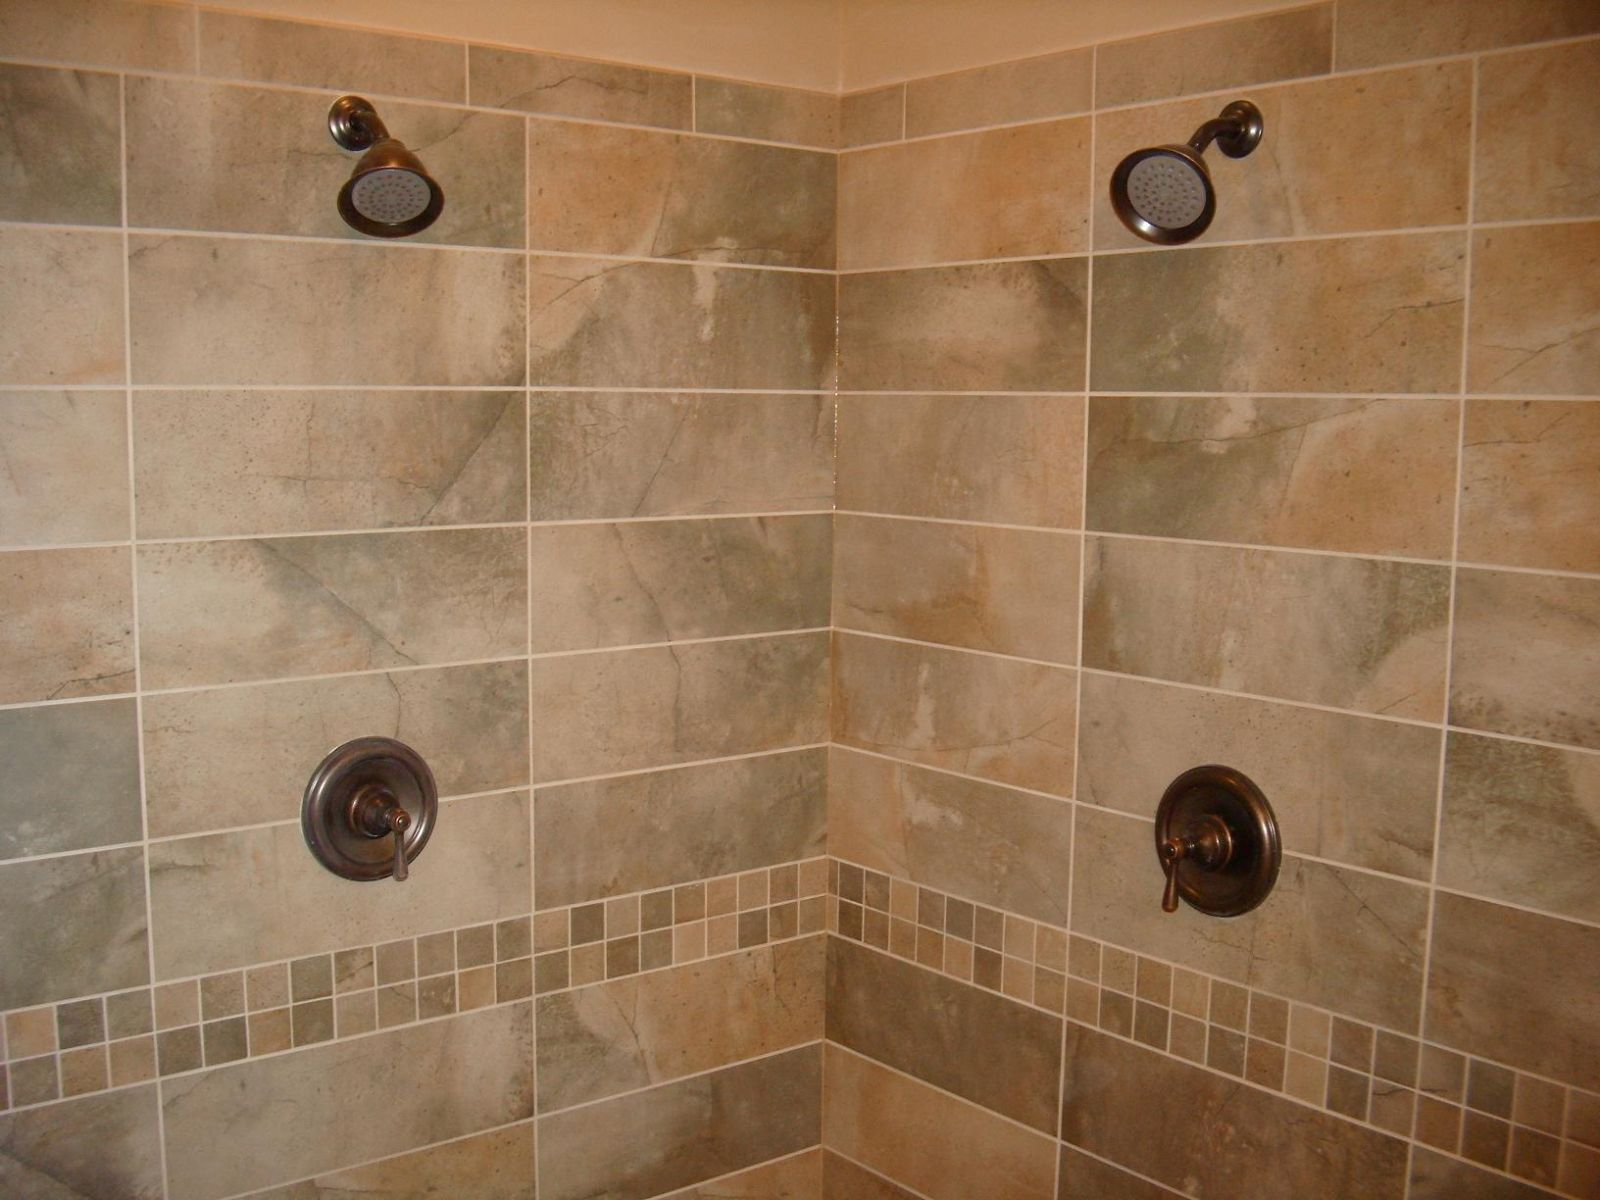 27 nice pictures and ideas craftsman style bathroom tile Bathroom remodel ideas with stand up shower